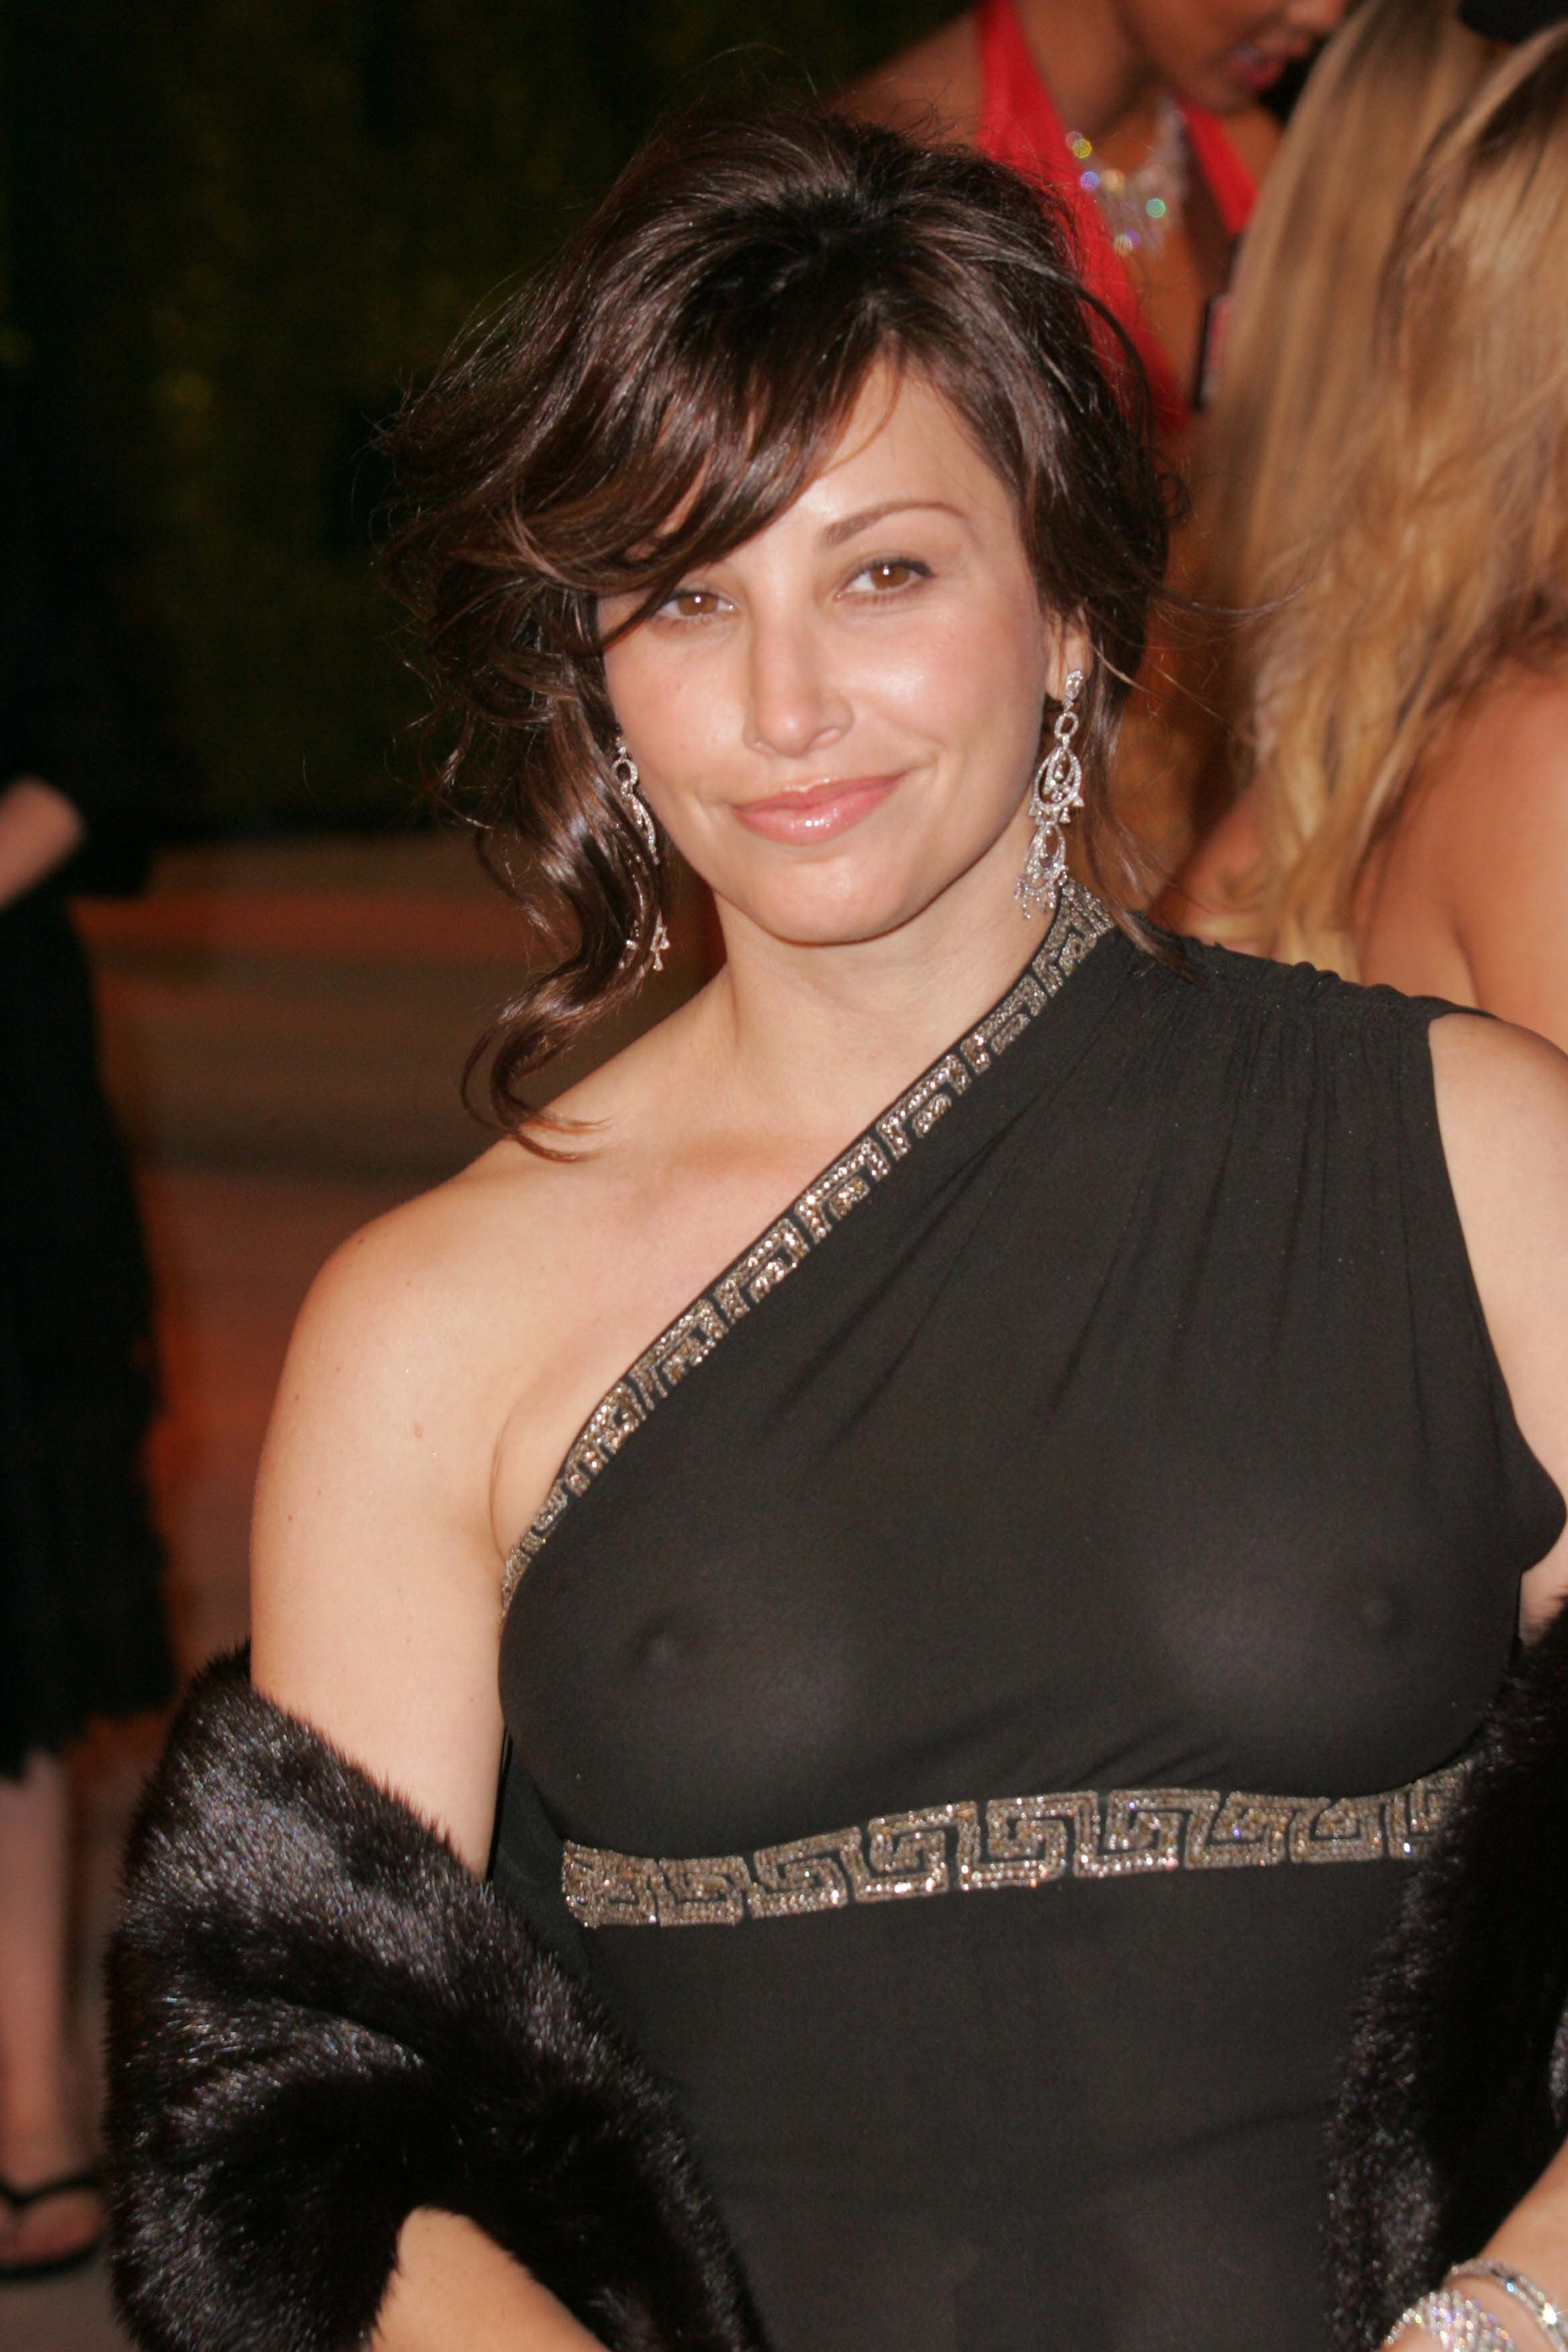 Gina Gershon - Images Colection